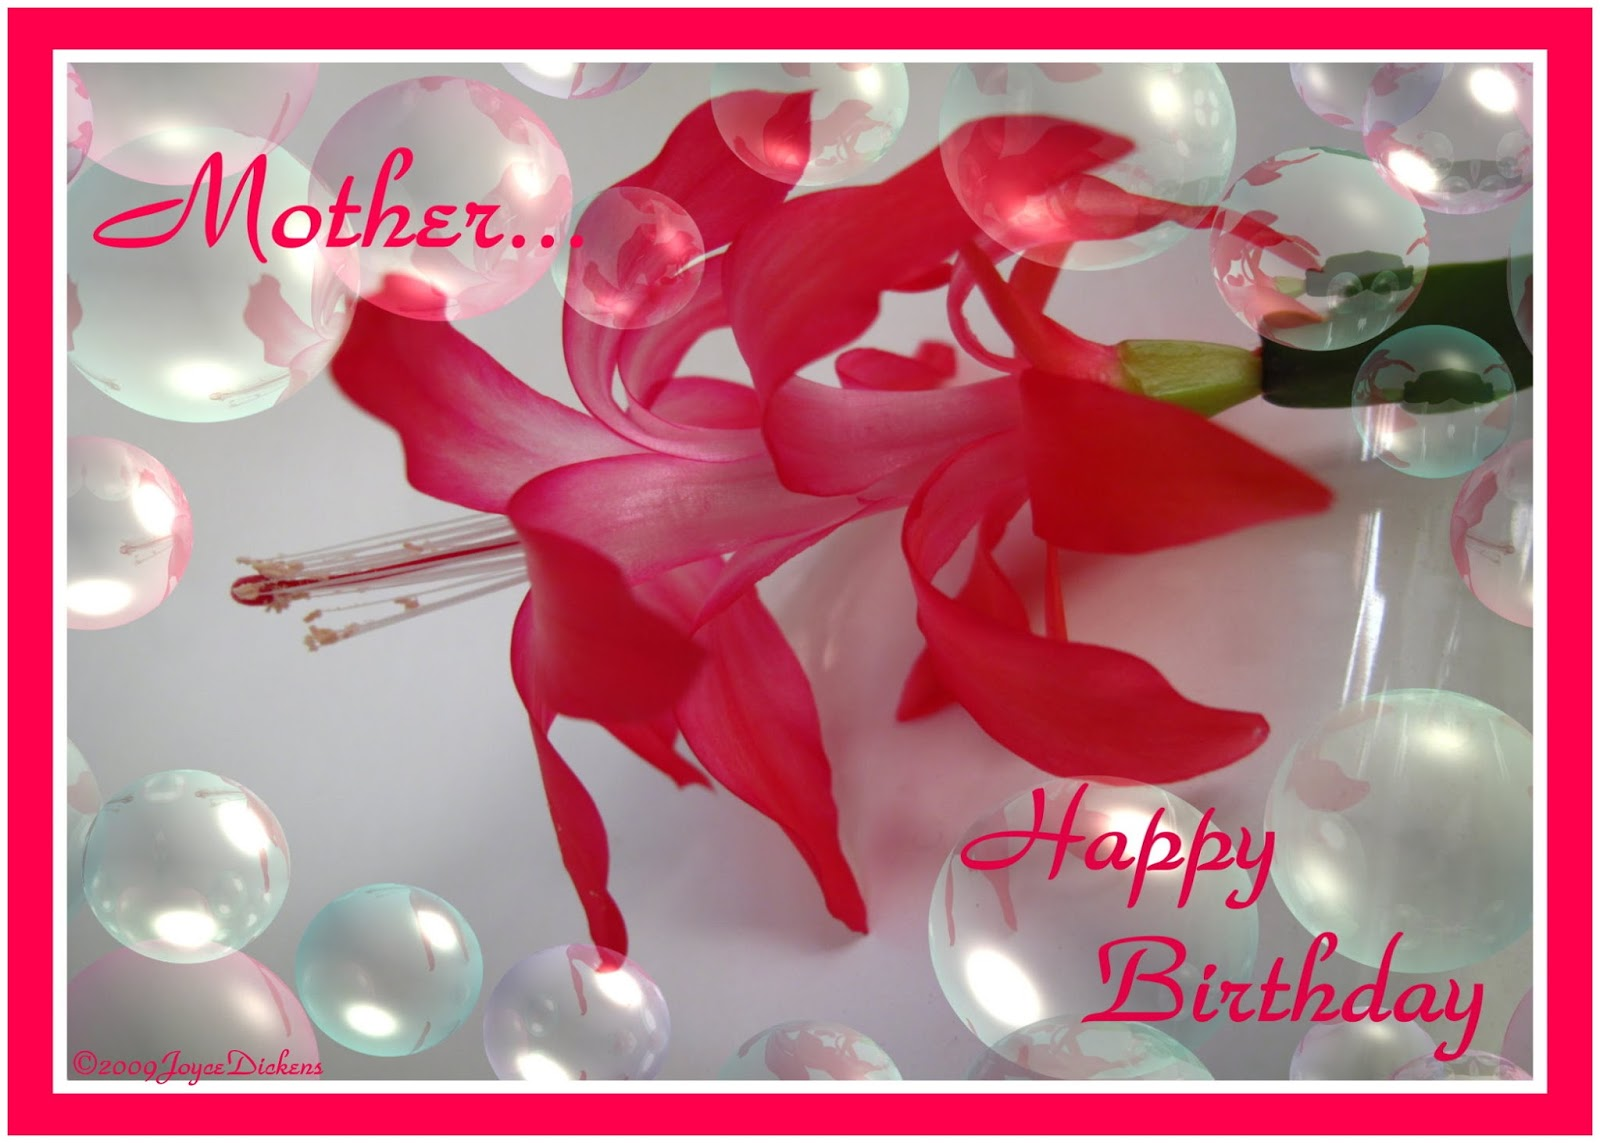 Egreeting ecards greeting cards and happy wishes happy birthday happy birthday card for mother kristyandbryce Choice Image